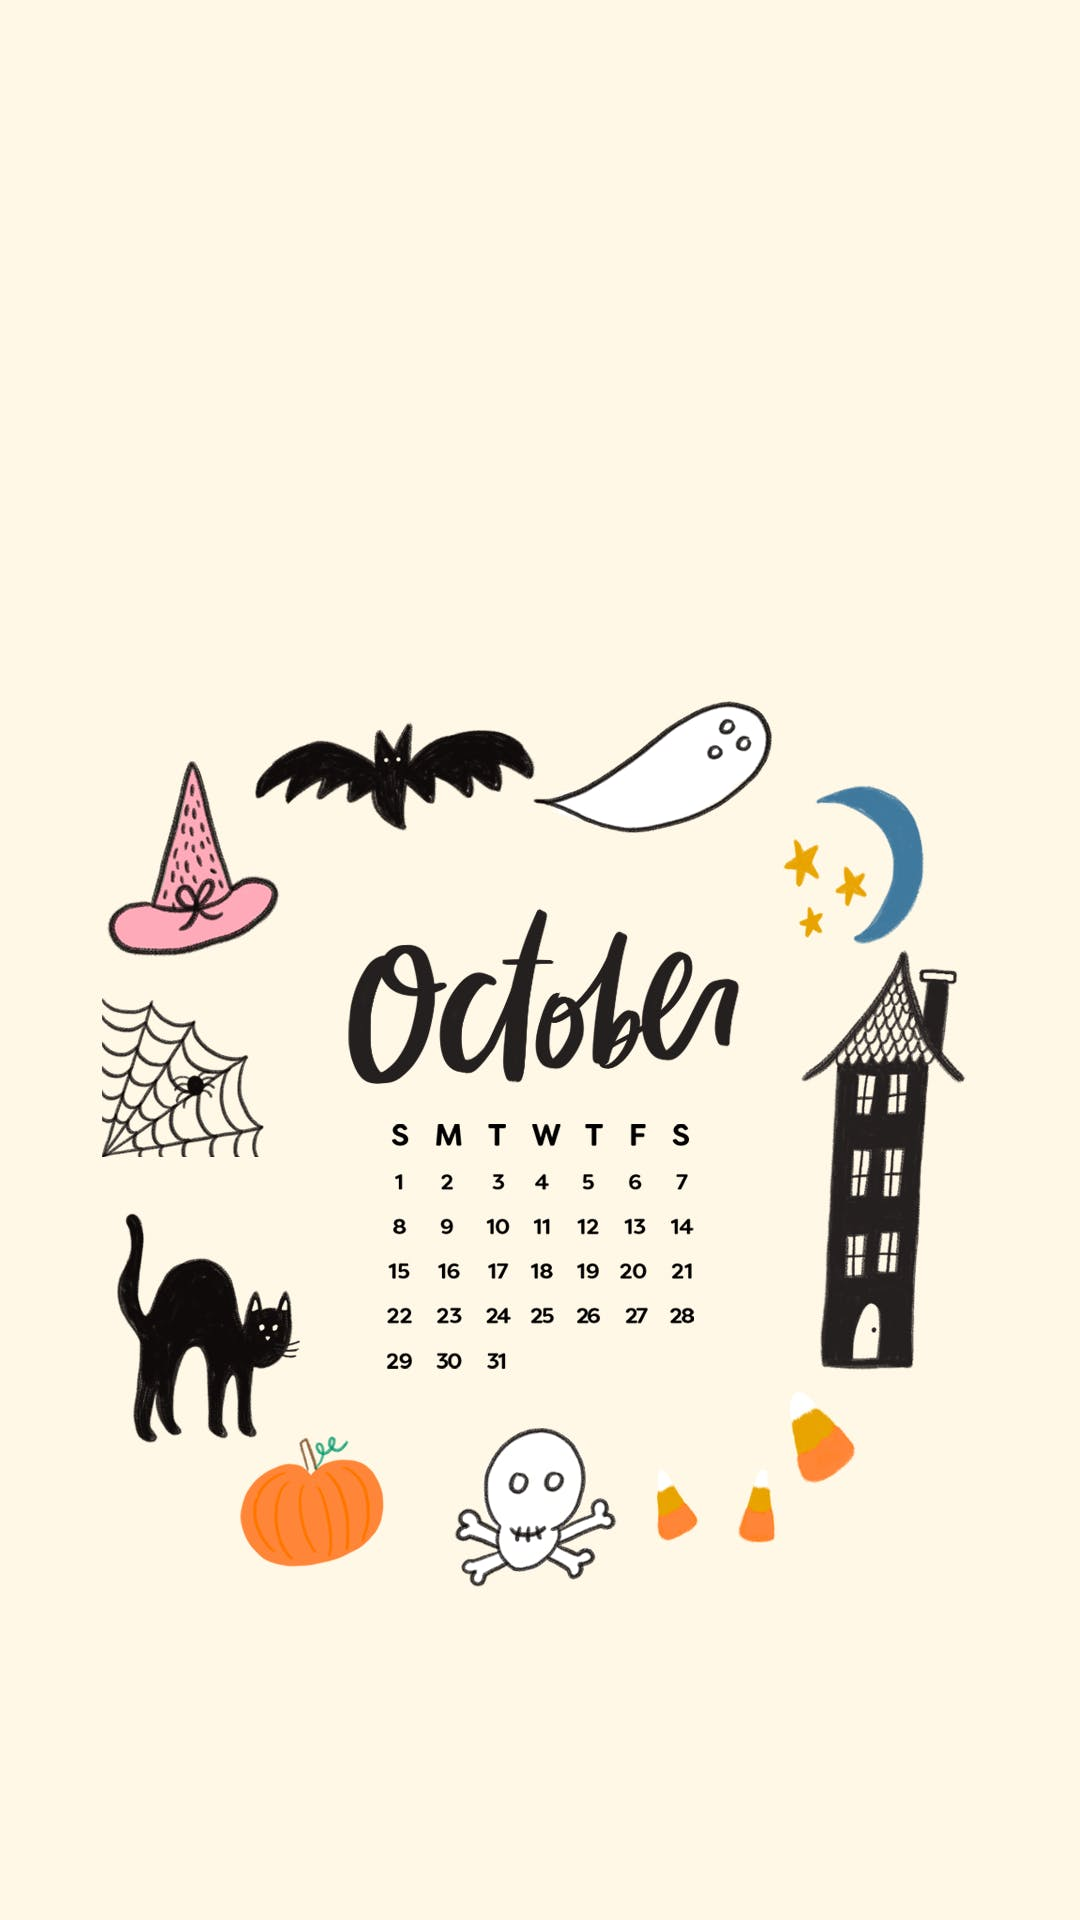 Tech Wallpapers Backgrounds for PSL Halloween October 2017 1080x1920